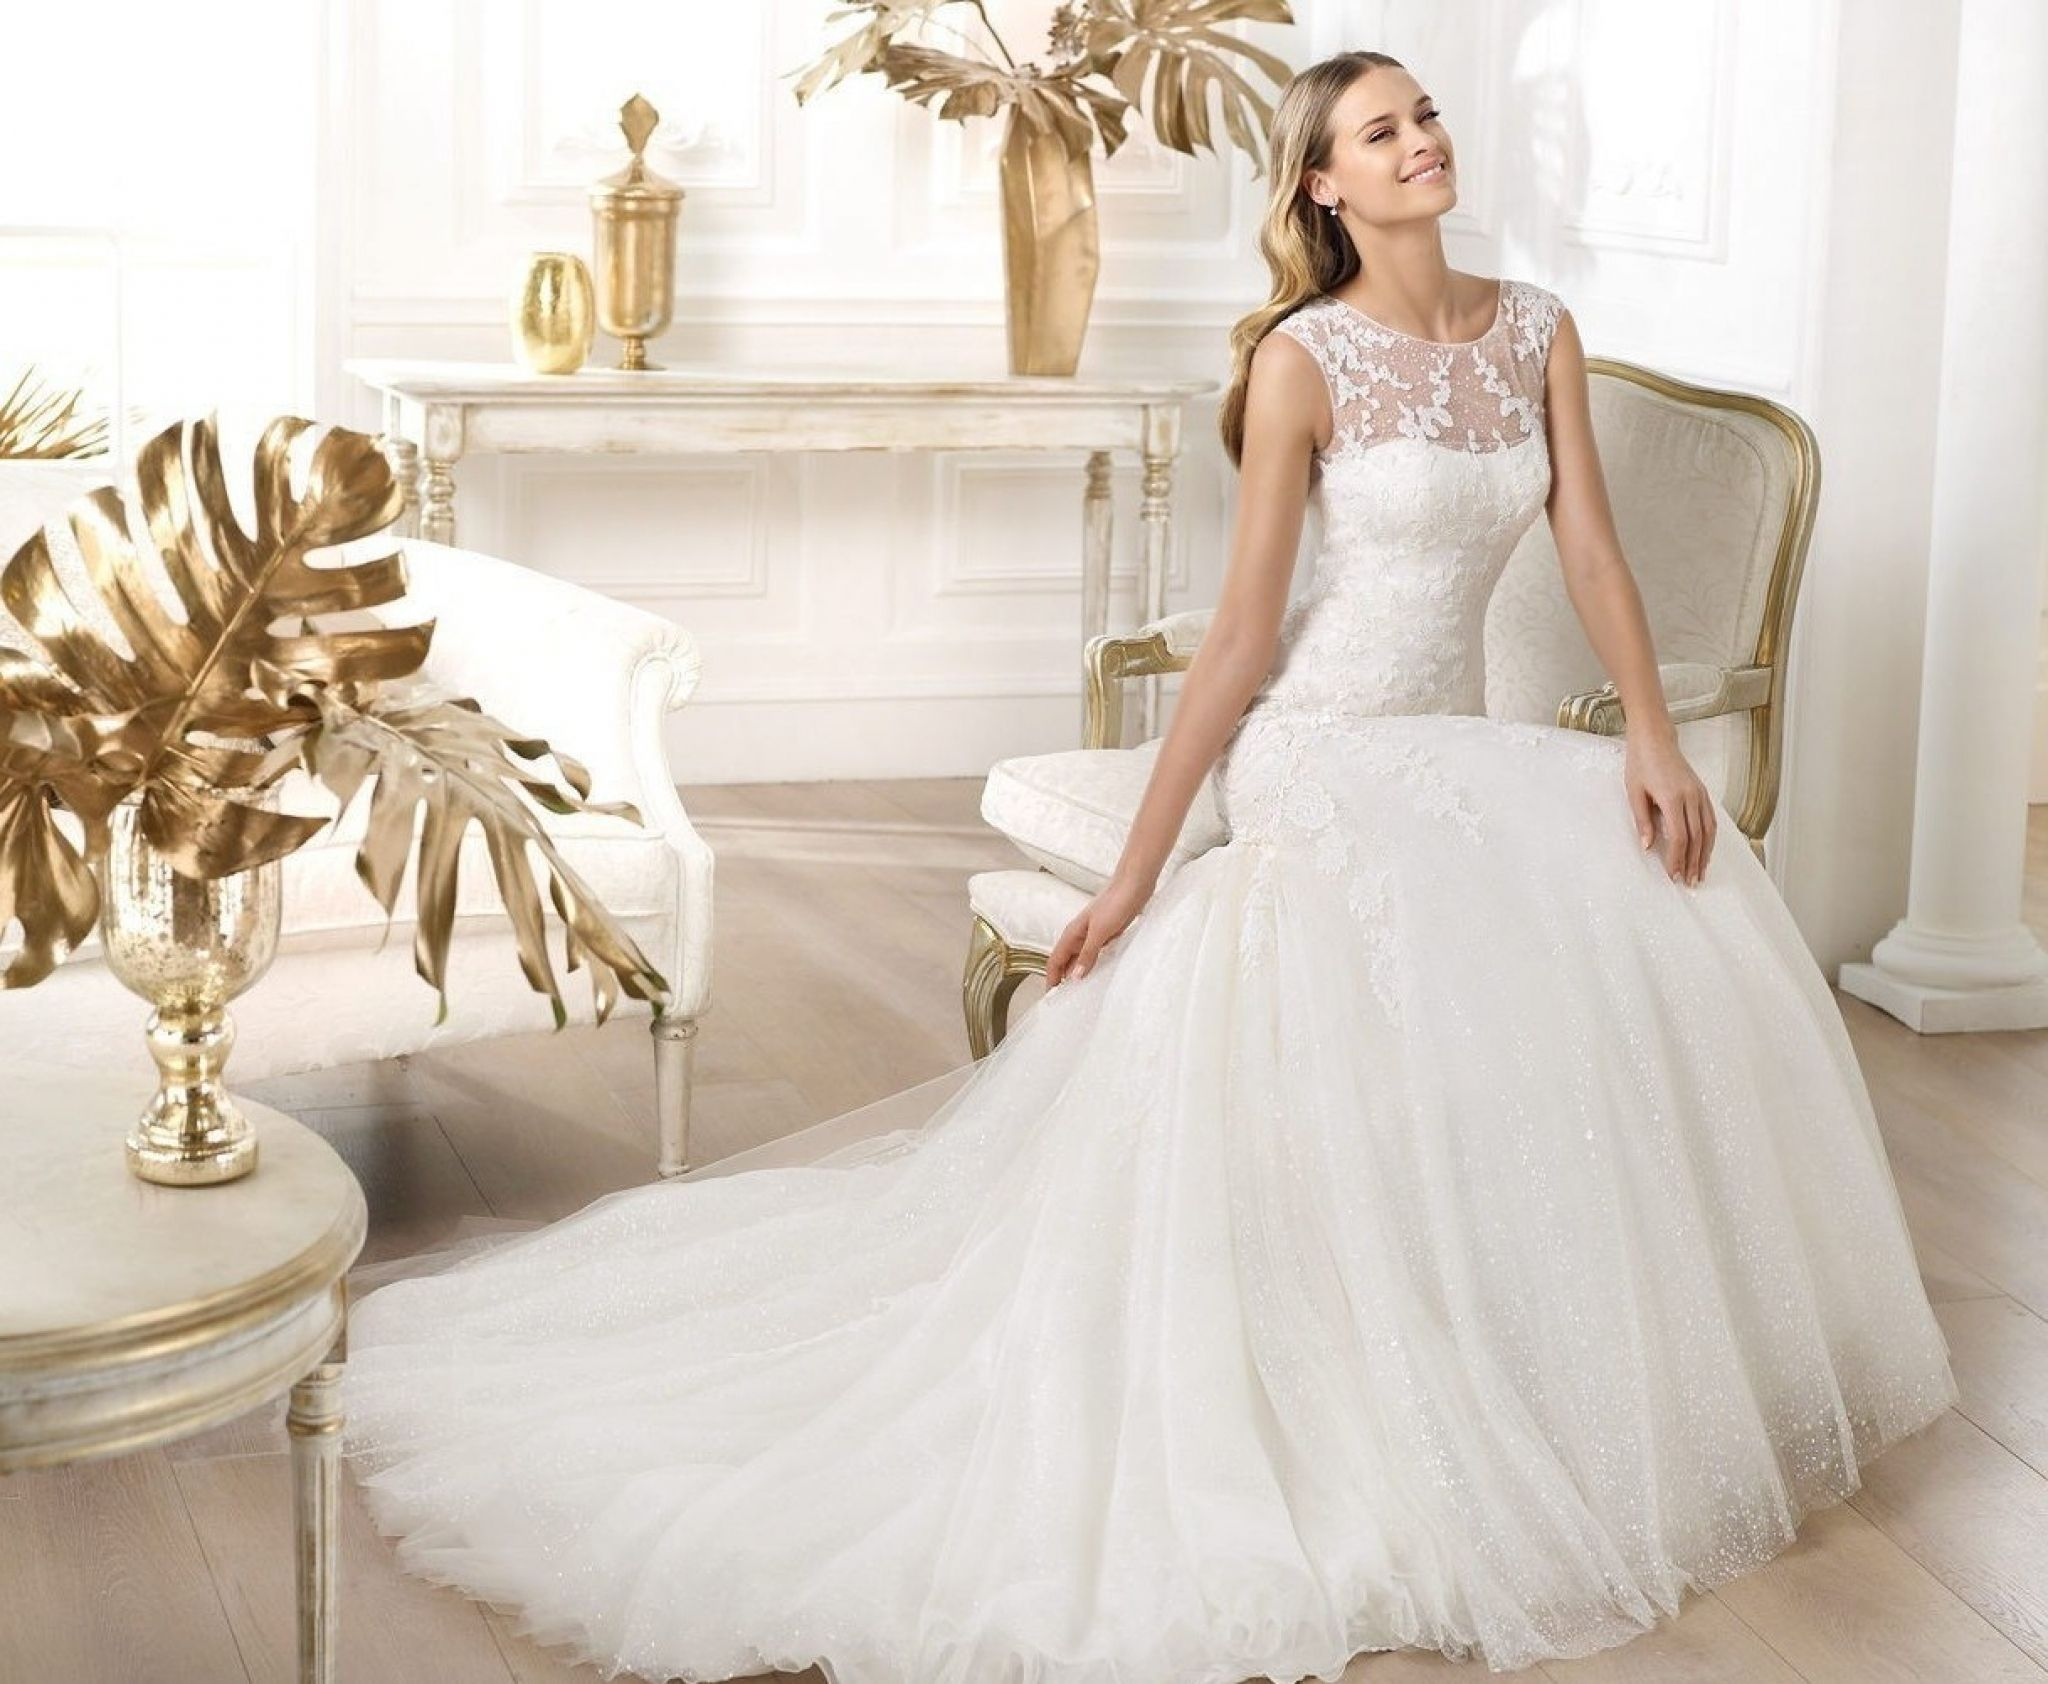 Where can i rent a wedding dress  wedding dress for rent  wedding dresses for cheap Check more at